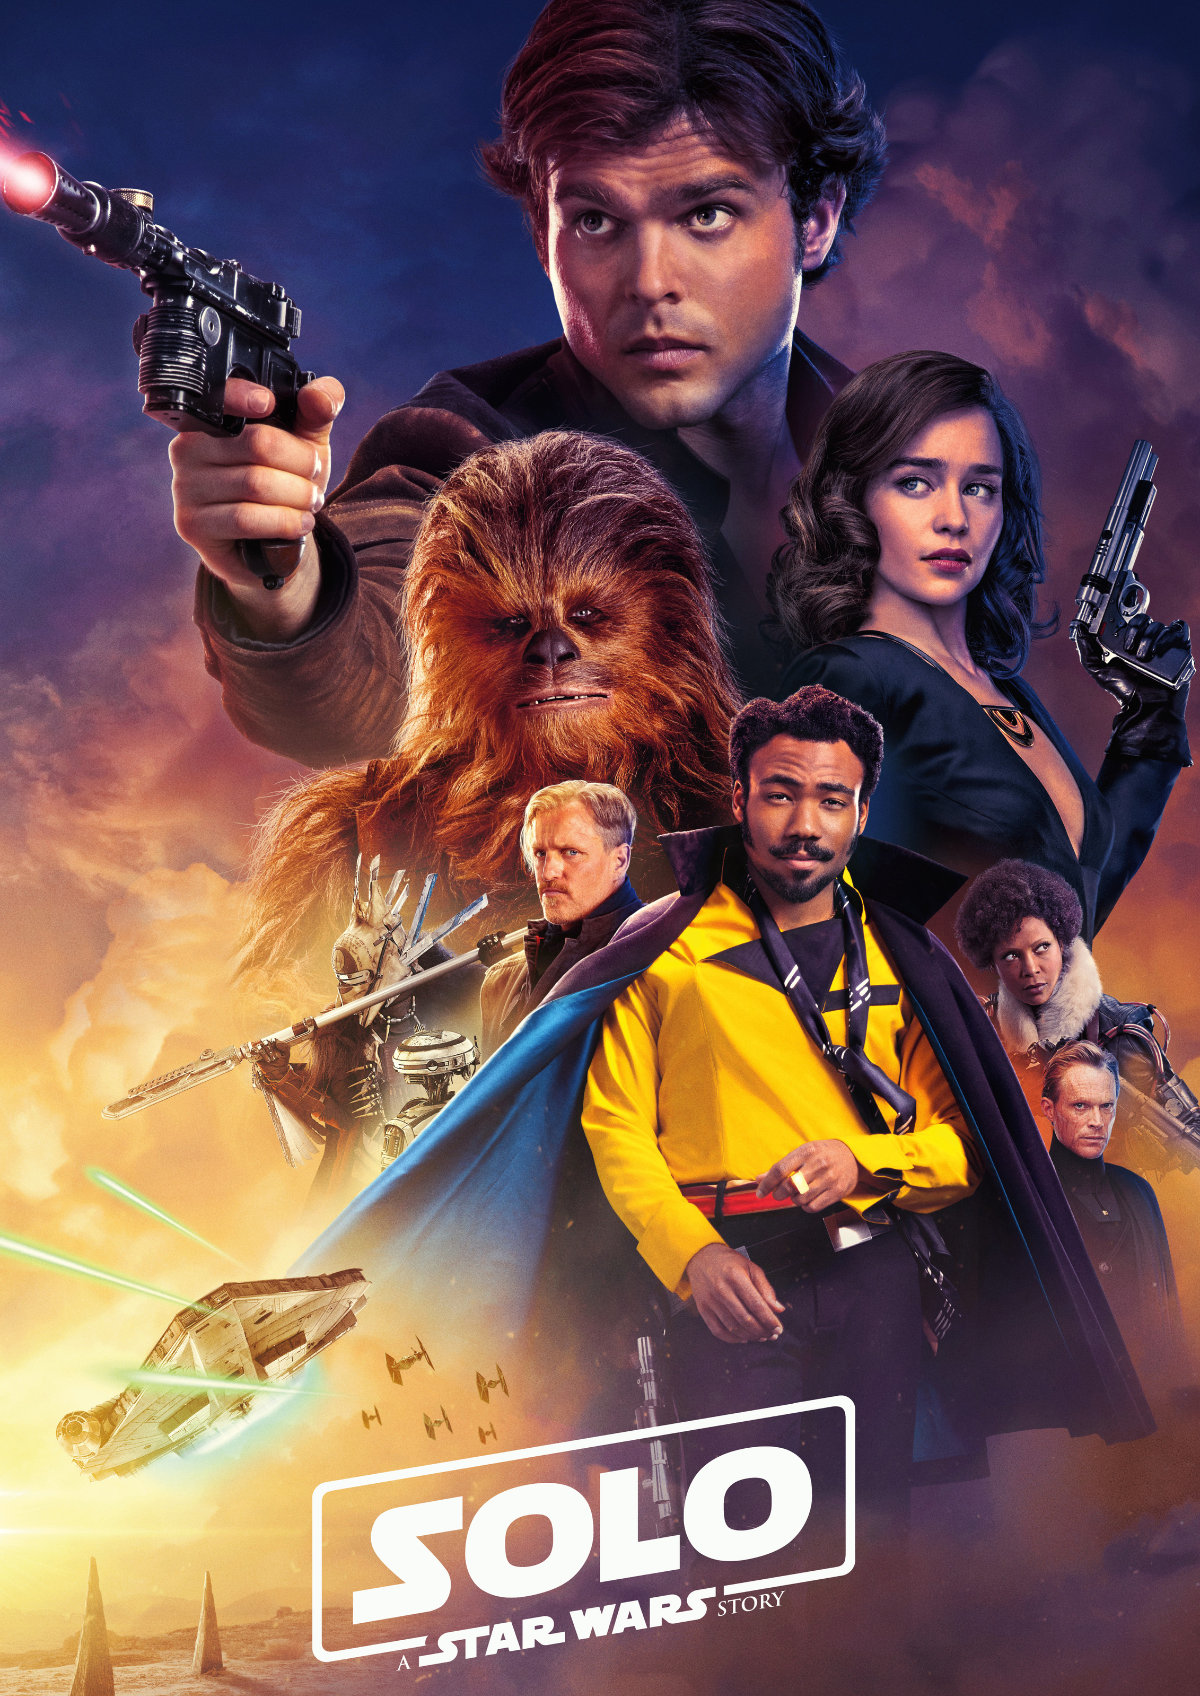 'Solo: A Star Wars Story' movie poster